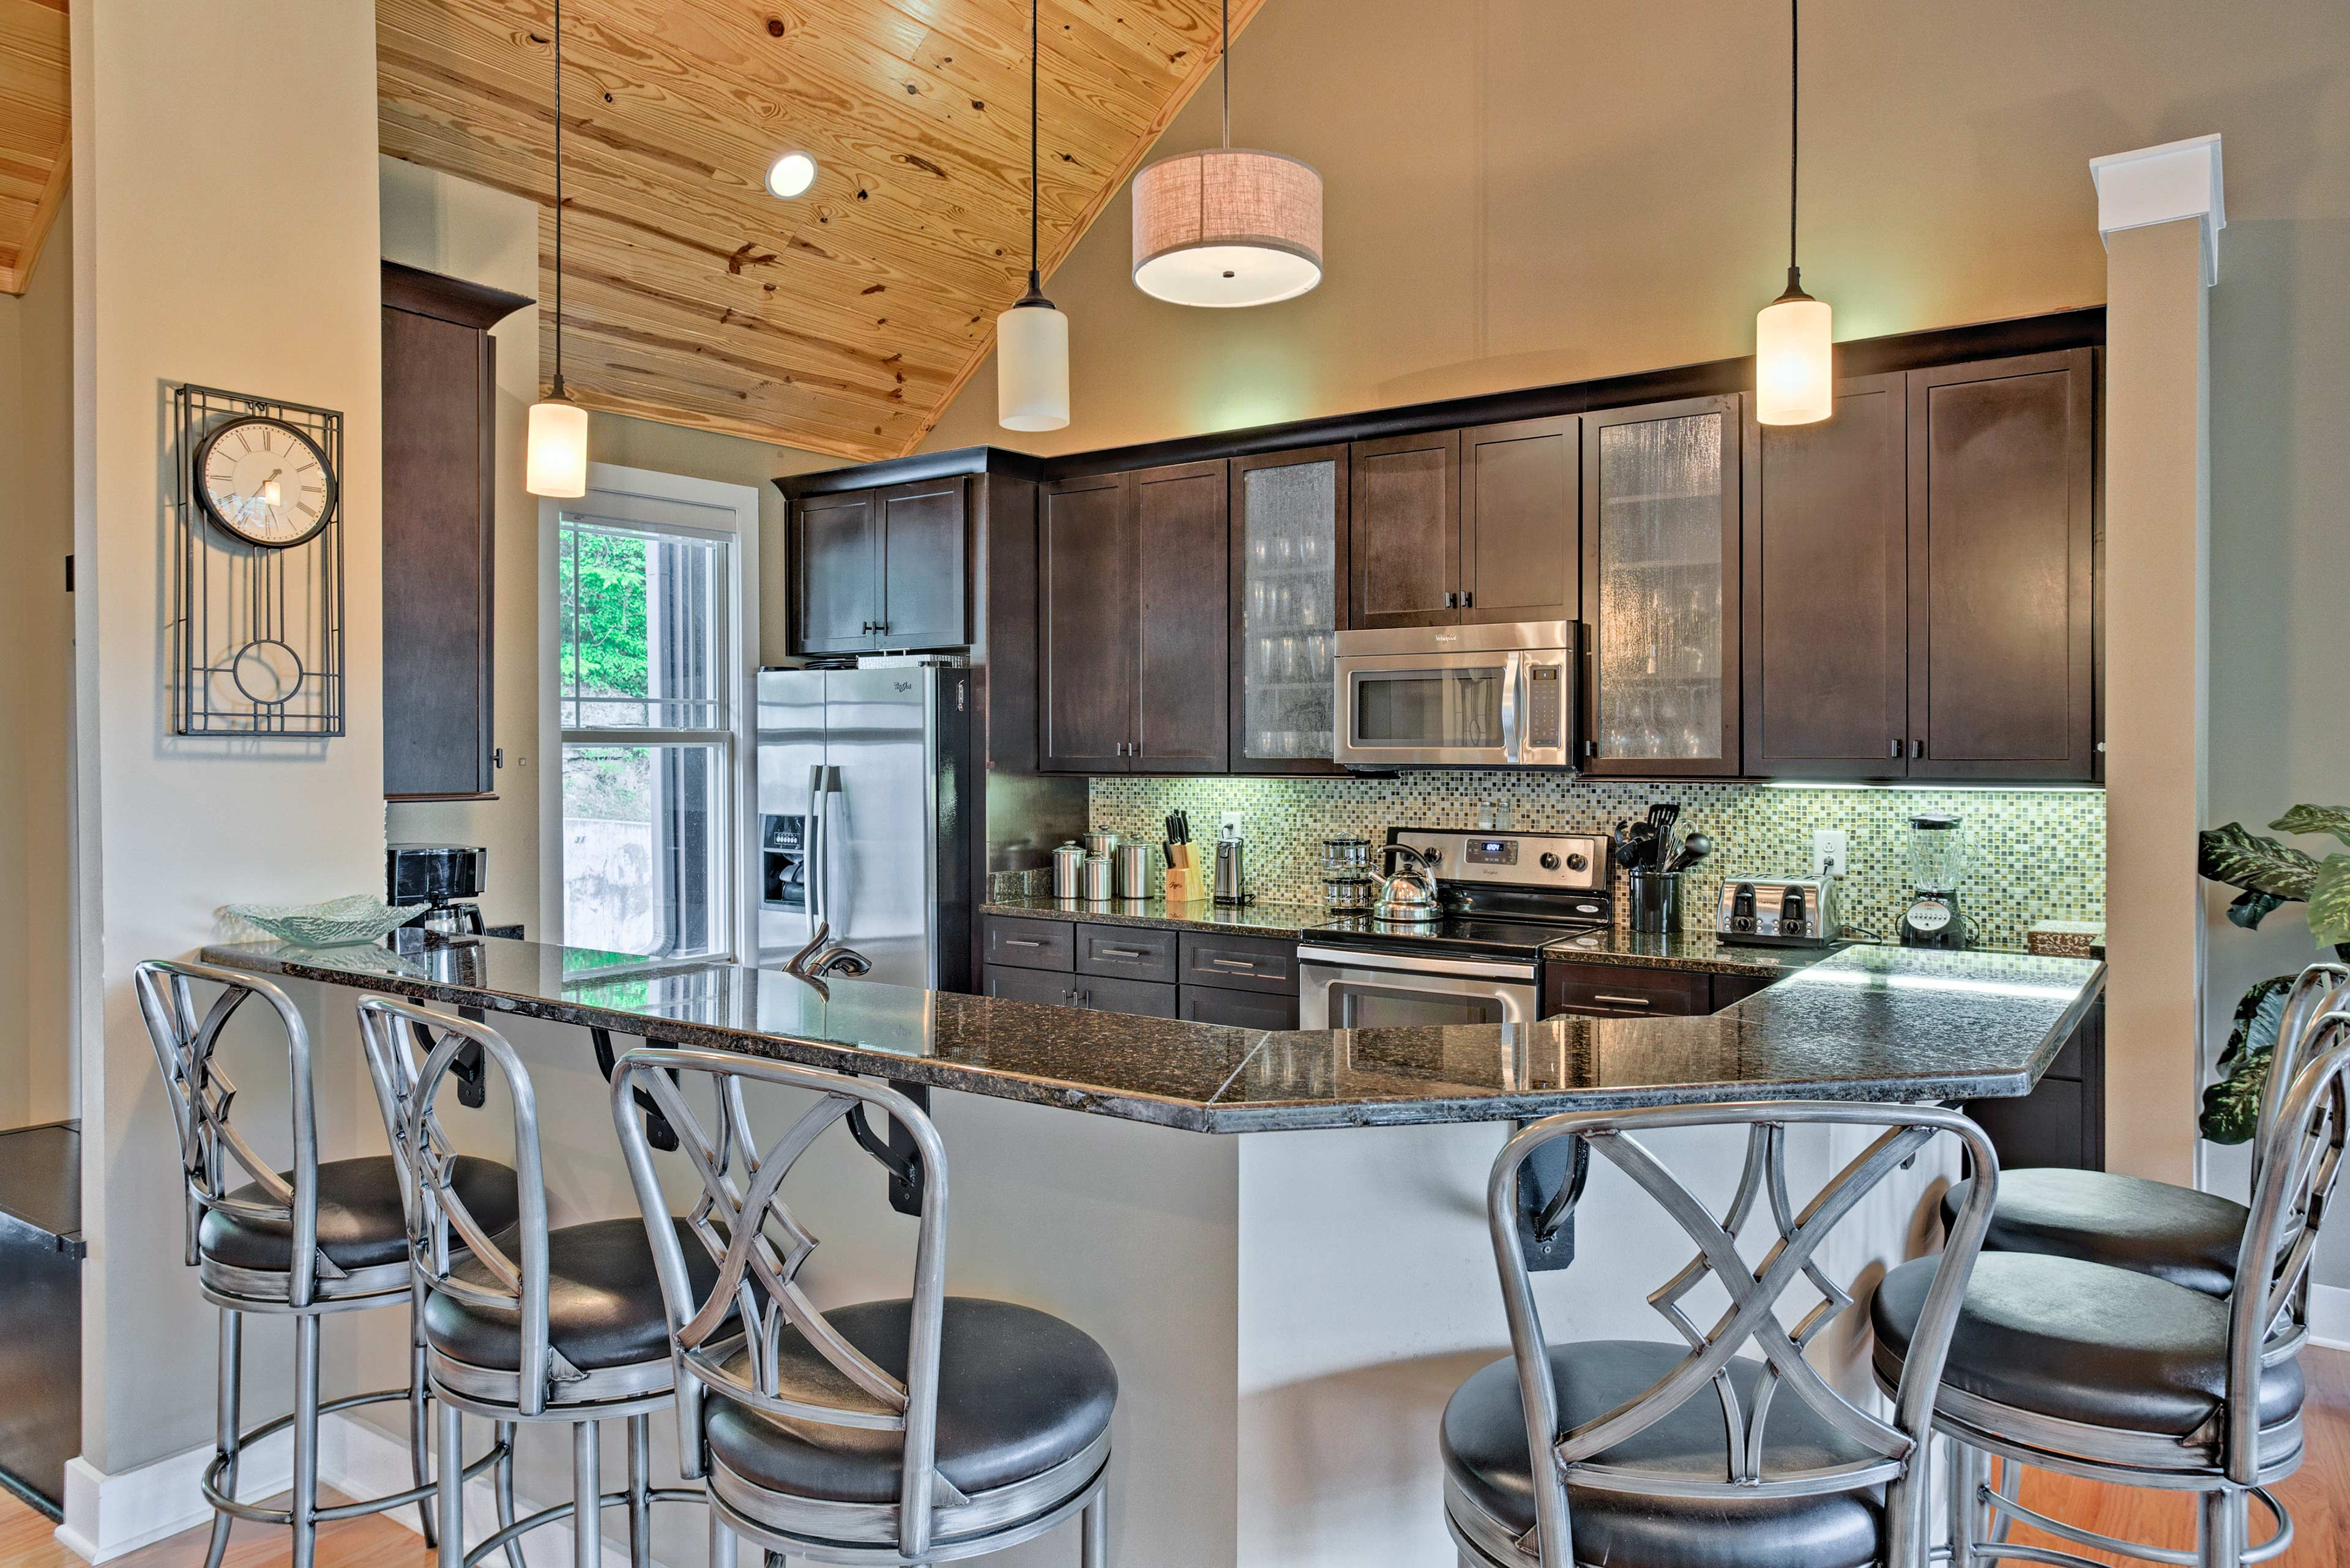 Guests can watch you cook from the 6-person breakfast bar!